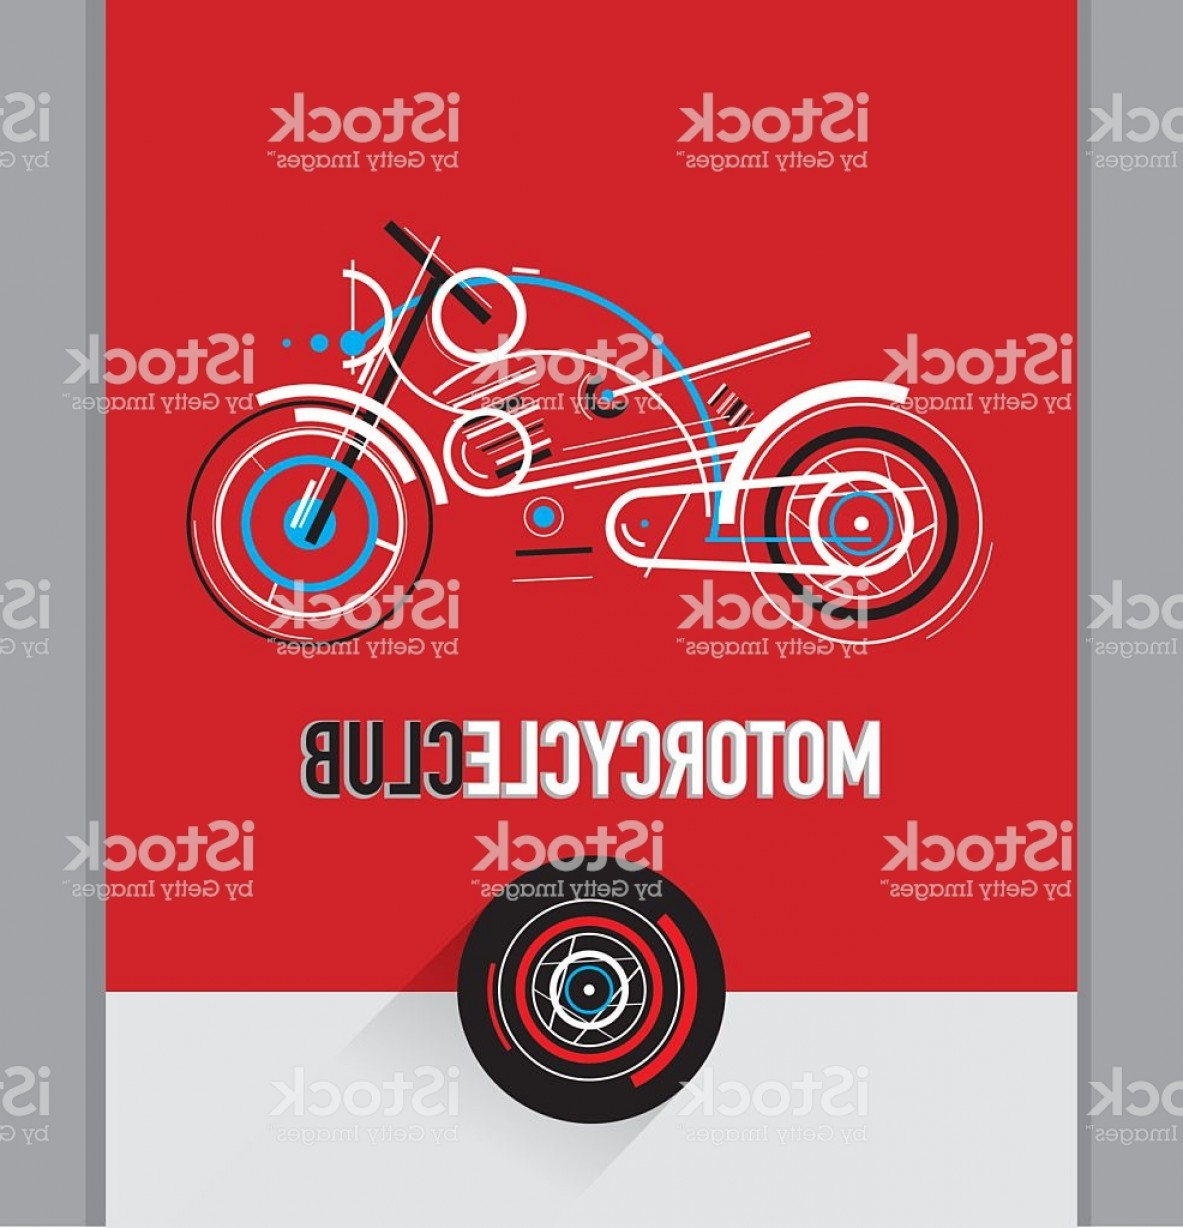 Stylized Vector Motorcycle: Motorcycle Vector Illustration Motorcycle Club Stylized Graphic Composition Gm